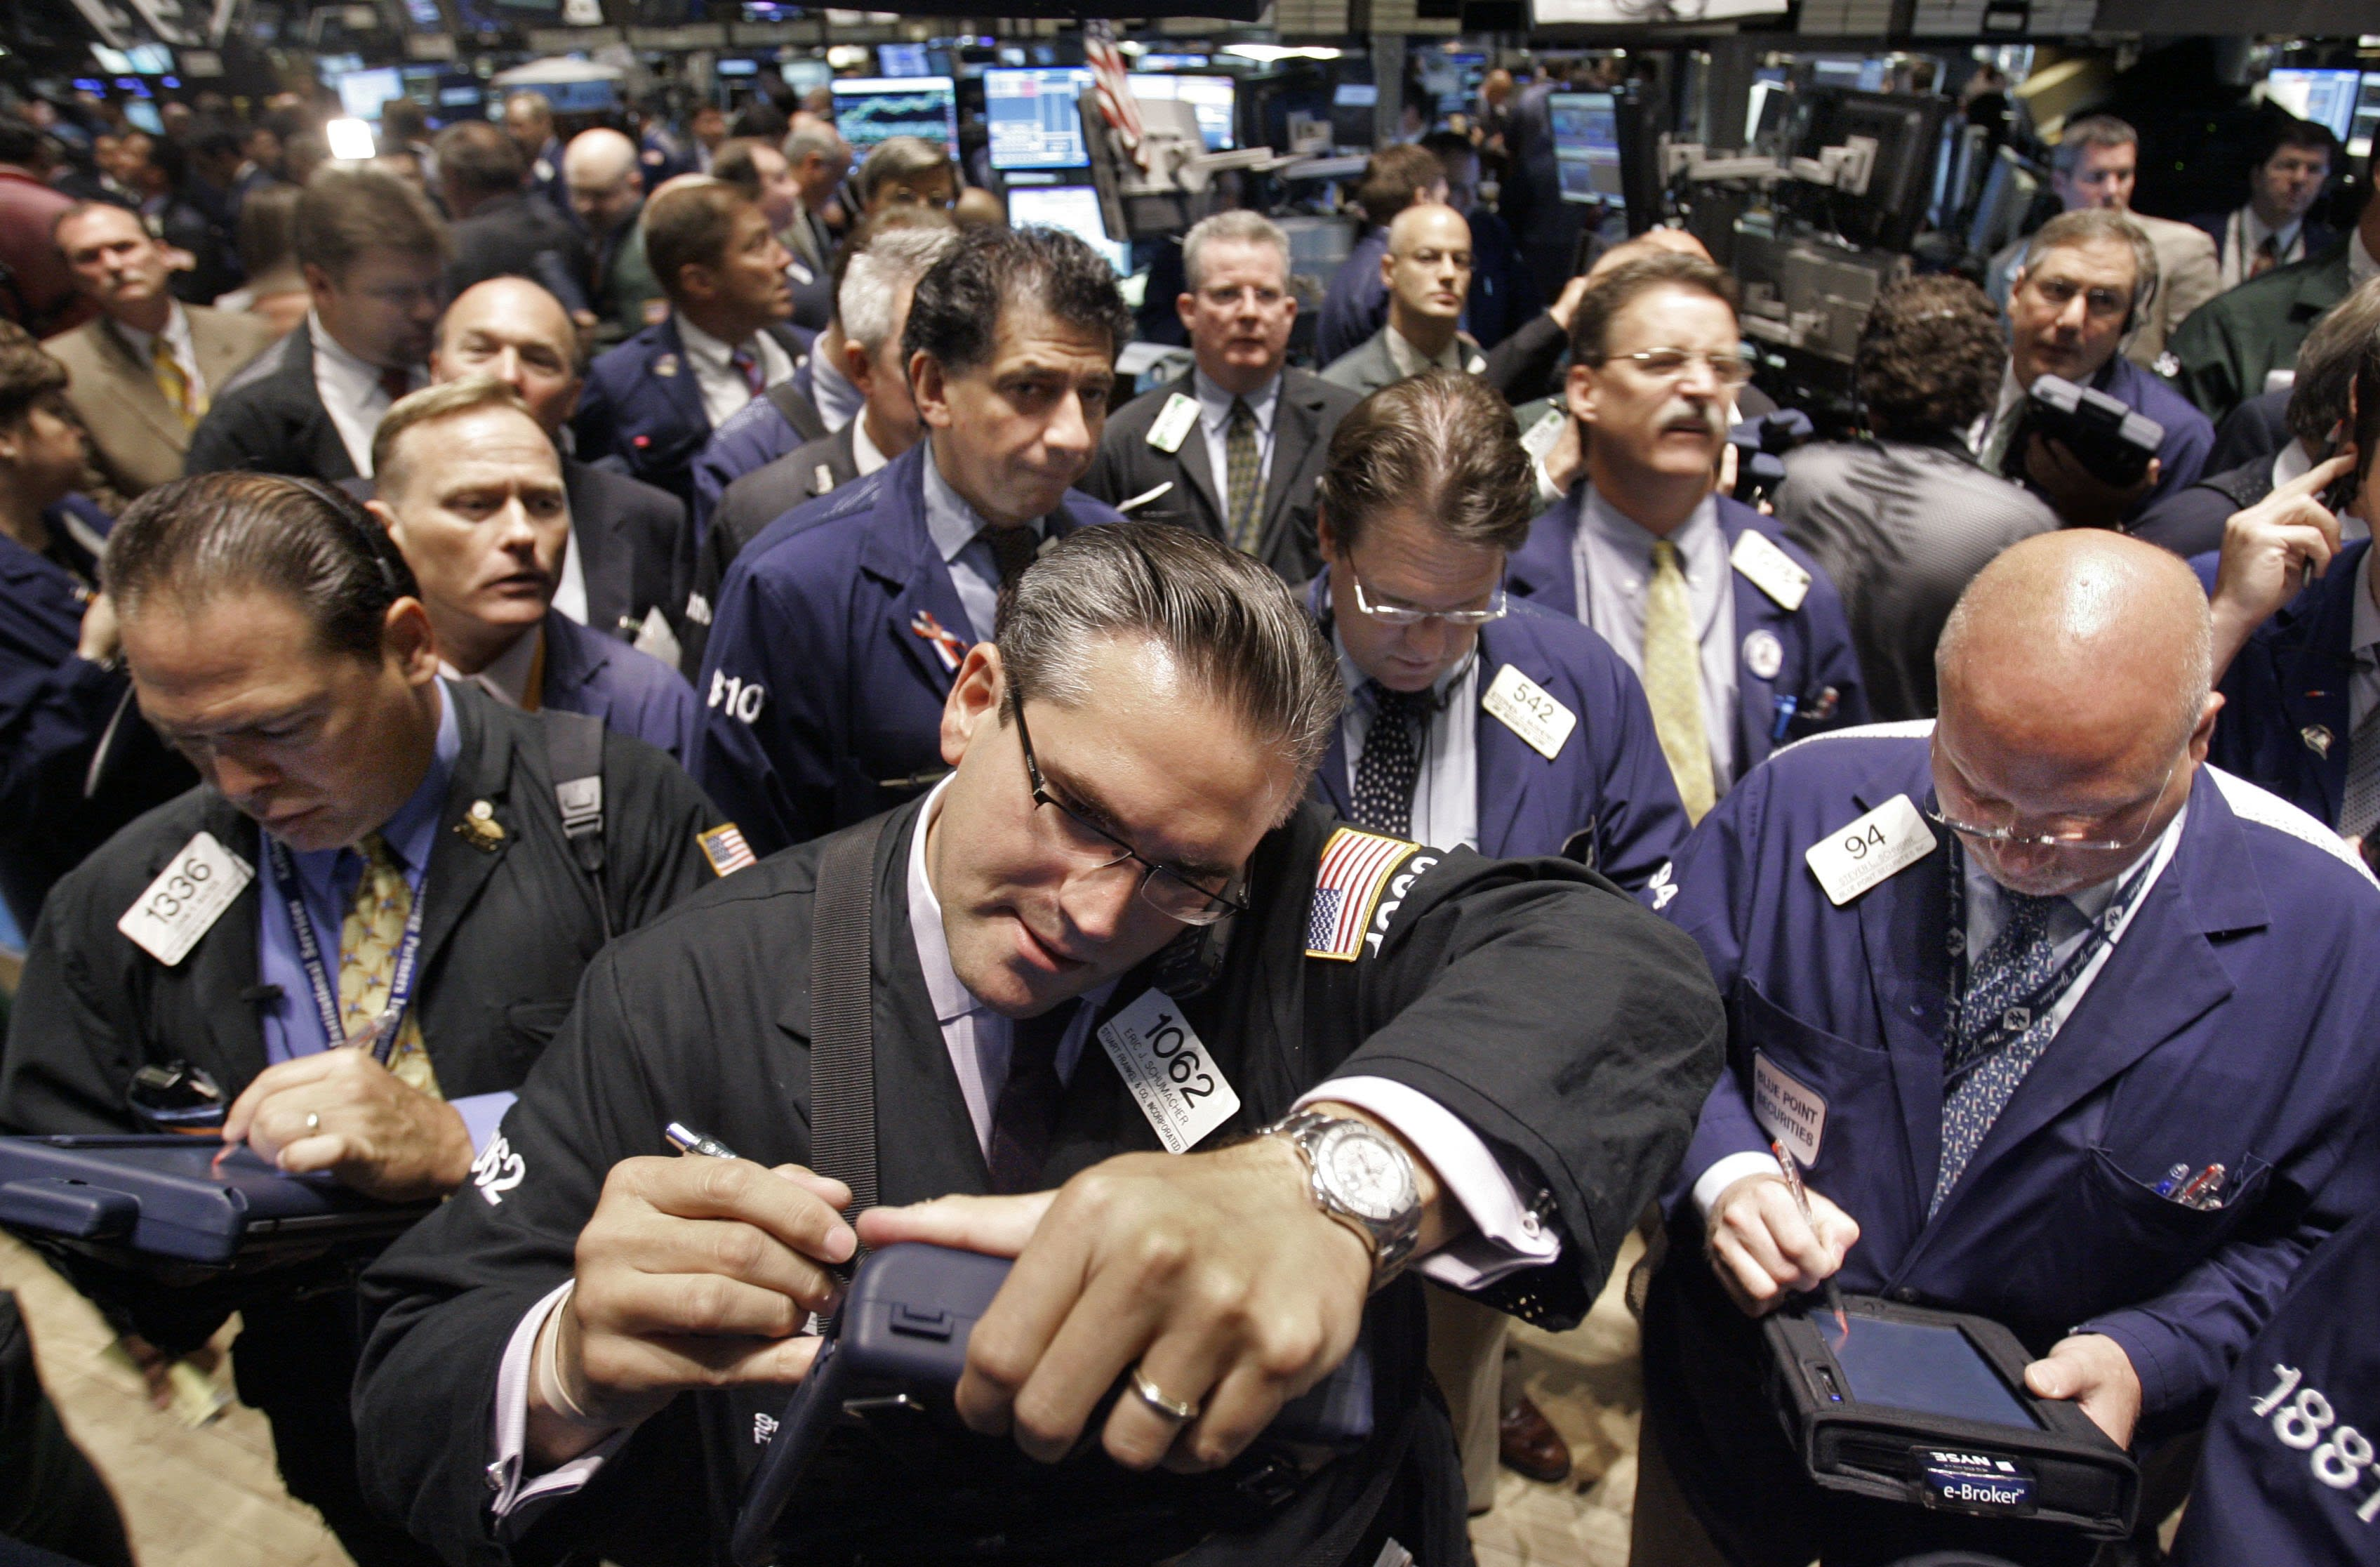 Rare victory for human stock pickers vs. the market